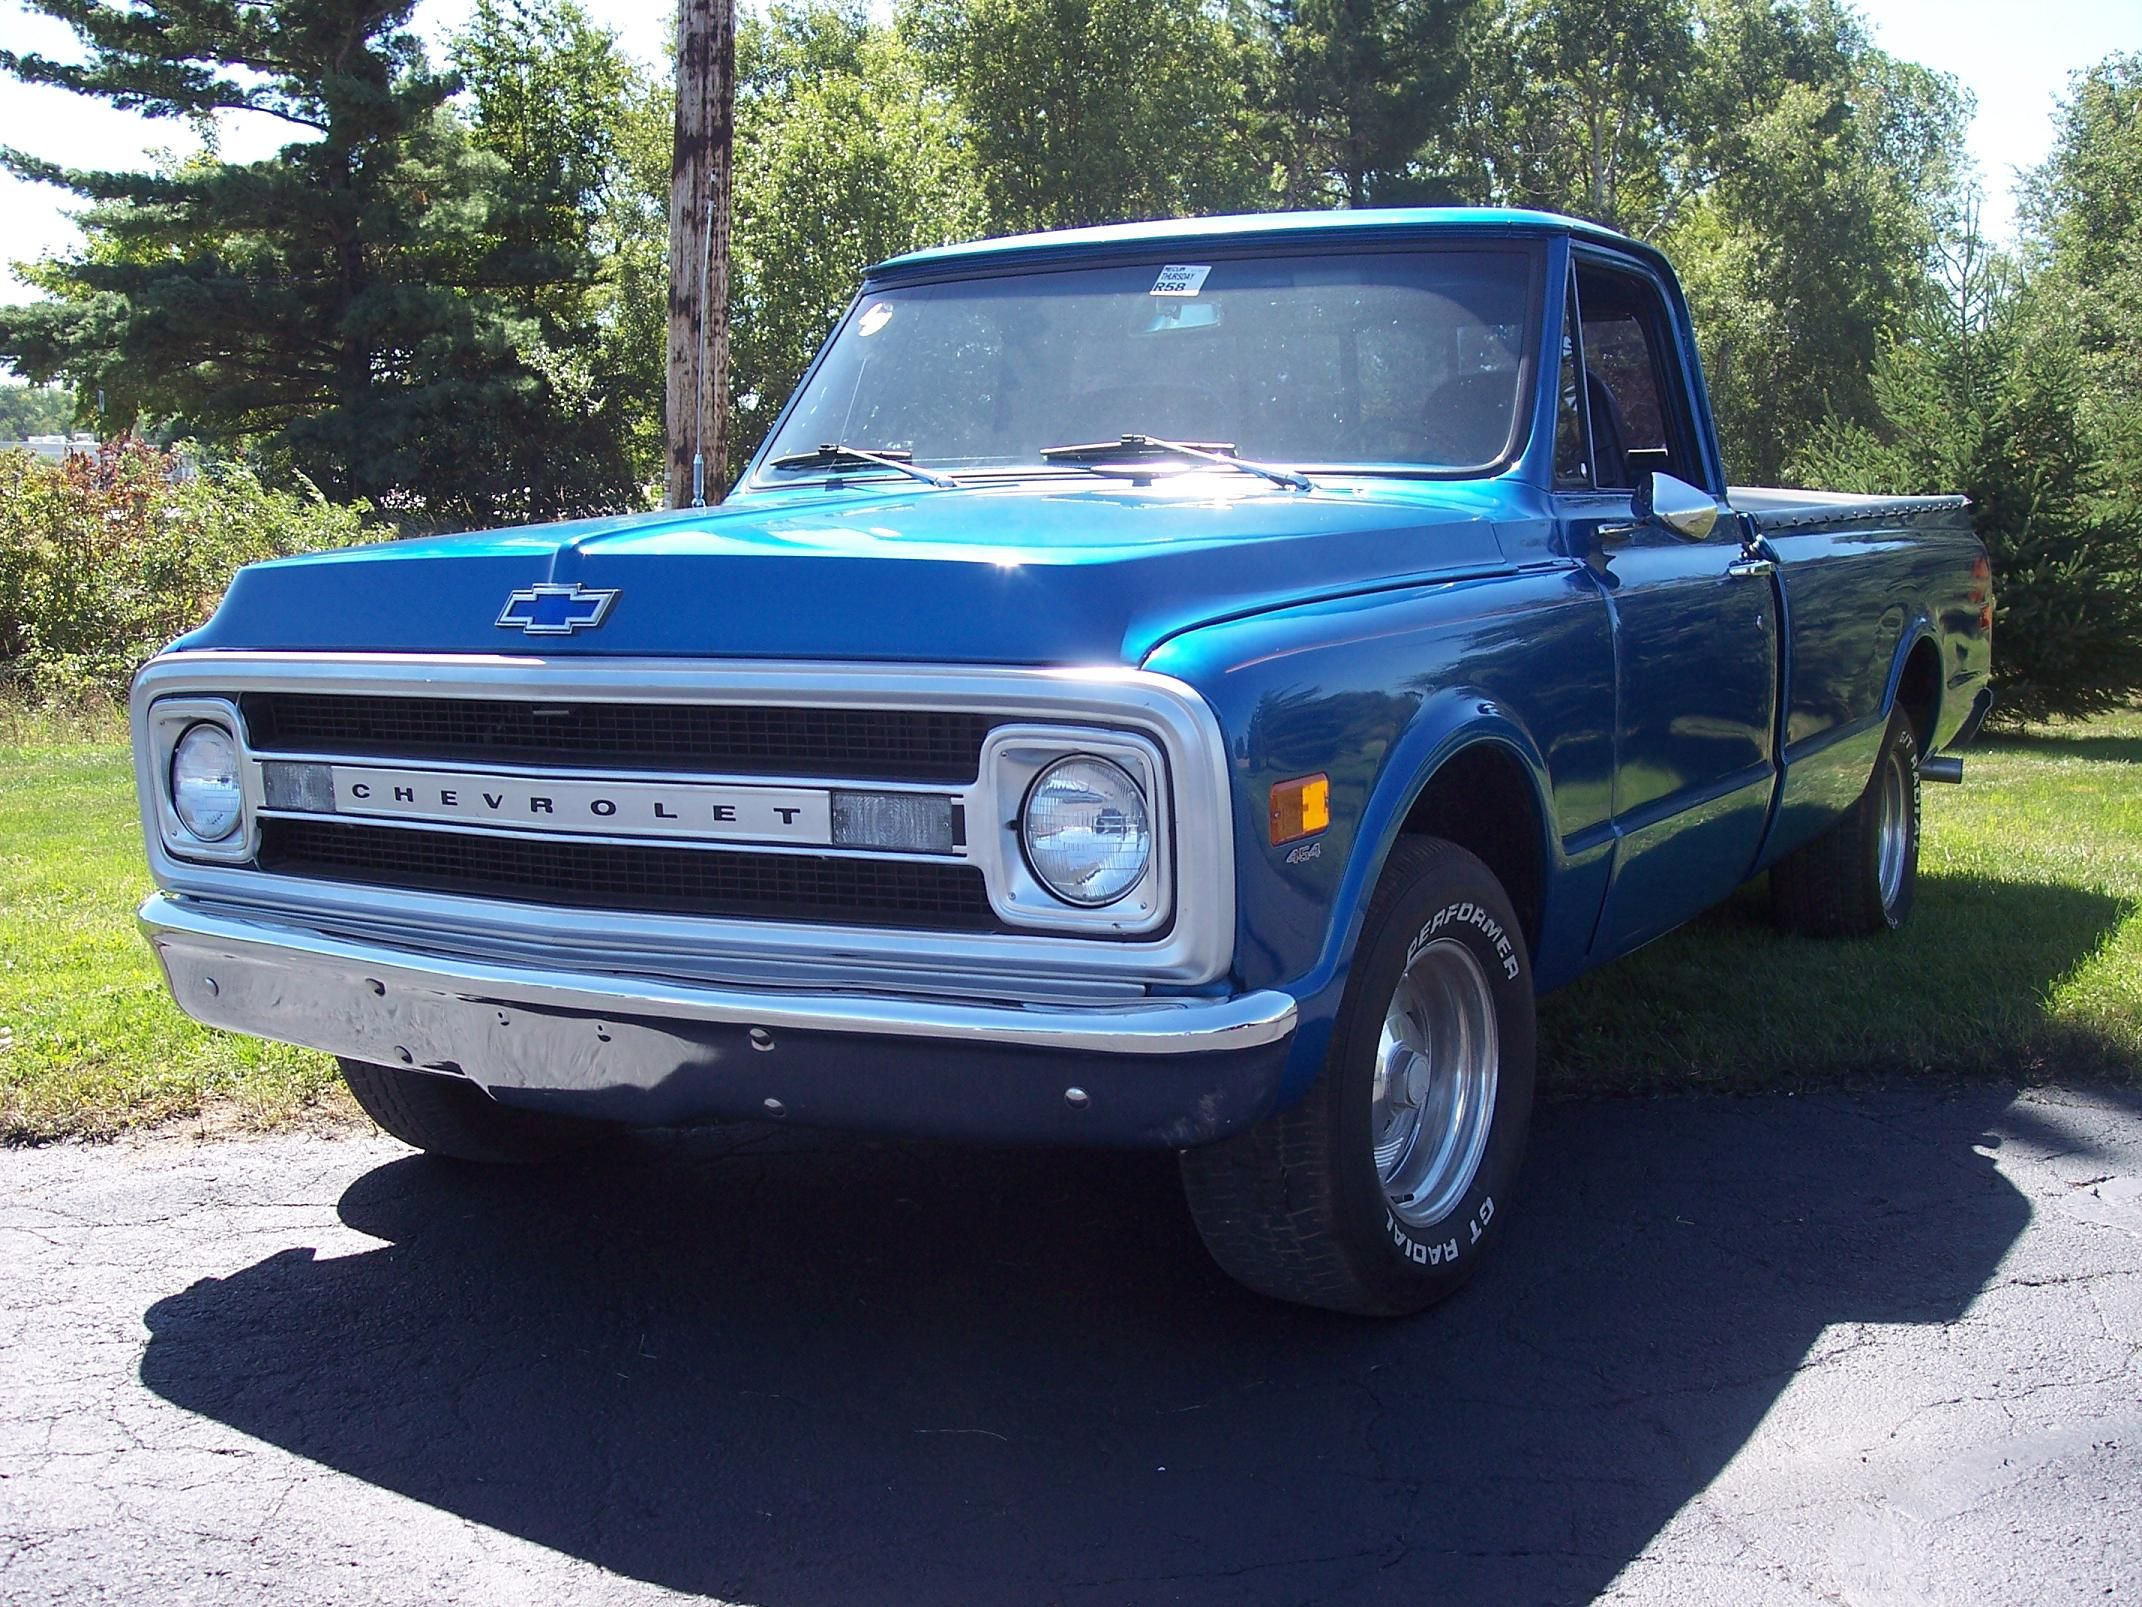 1970 Chevy Truck Shortbed Super Clean c10 Hot rod ...